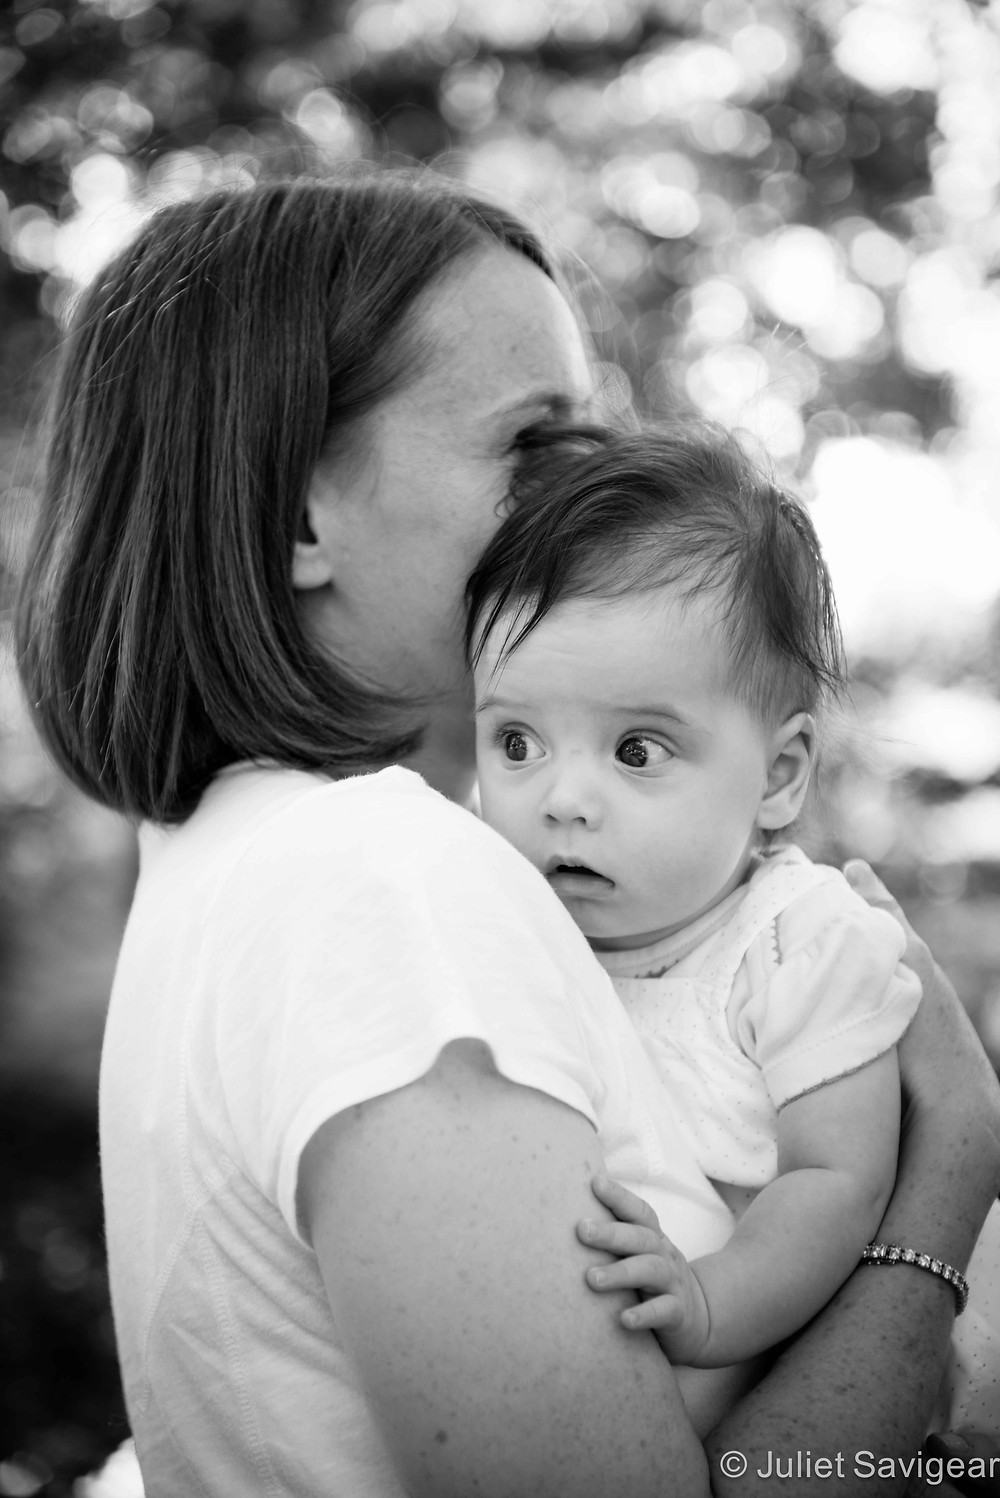 In Mummy's Arms - Baby & Family Photography, Wandsworth Common